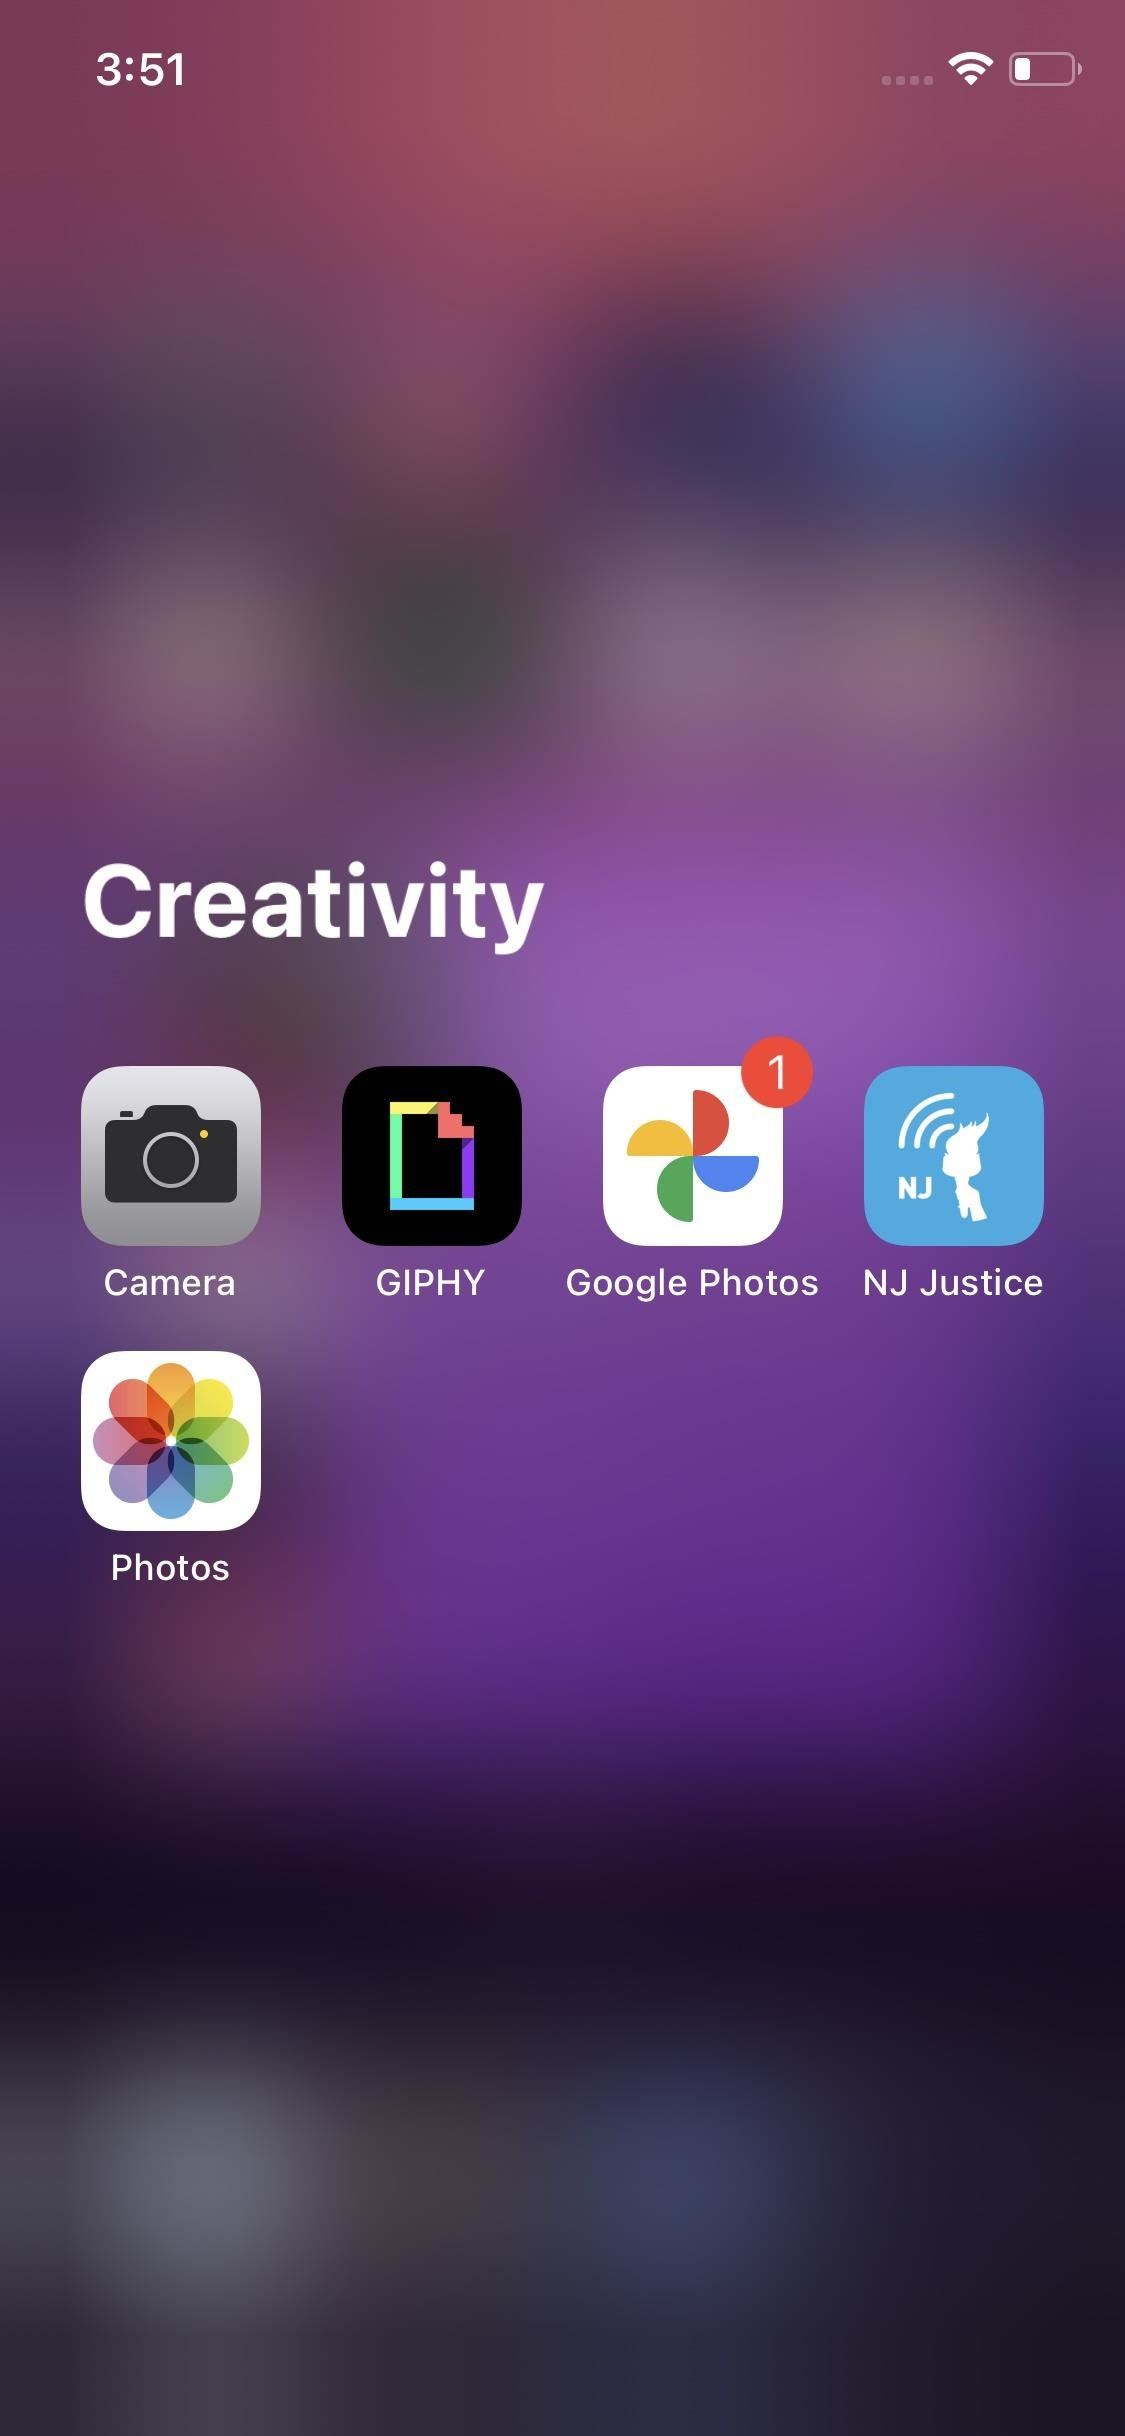 There's a New App Library on Your iPhone's Home Screen — Here's Everything You Need to Know About It in iOS 14